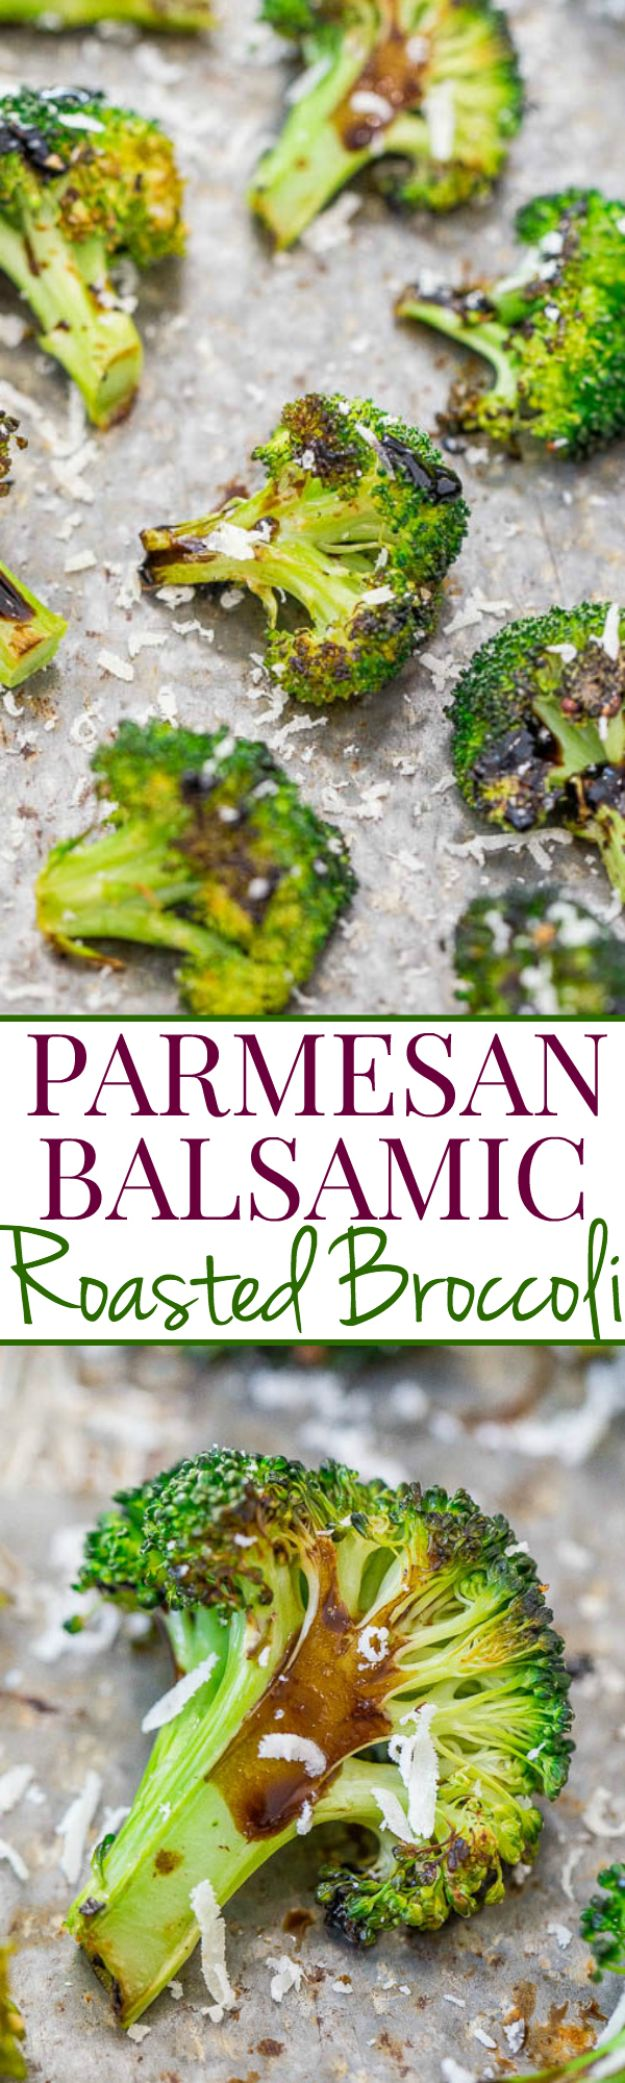 Best Broccoli Recipes - Parmesan Balsamic Roasted Broccoli - Recipe Ideas for Roasted, Steamed, Fresh or Frozen, Healthy, Cheesy, Soup, Salad, Casseroles and Side Dish Vegetables Made With Broccoli. Shrimp, Chicken, Pasta and Paleo Recipes. Easy Dinner, Lunch and Healthy Snacks for Kids and Adults - Homemade Food and Crafts by DIY JOY http://diyjoy.com/best-broccoli-recipes